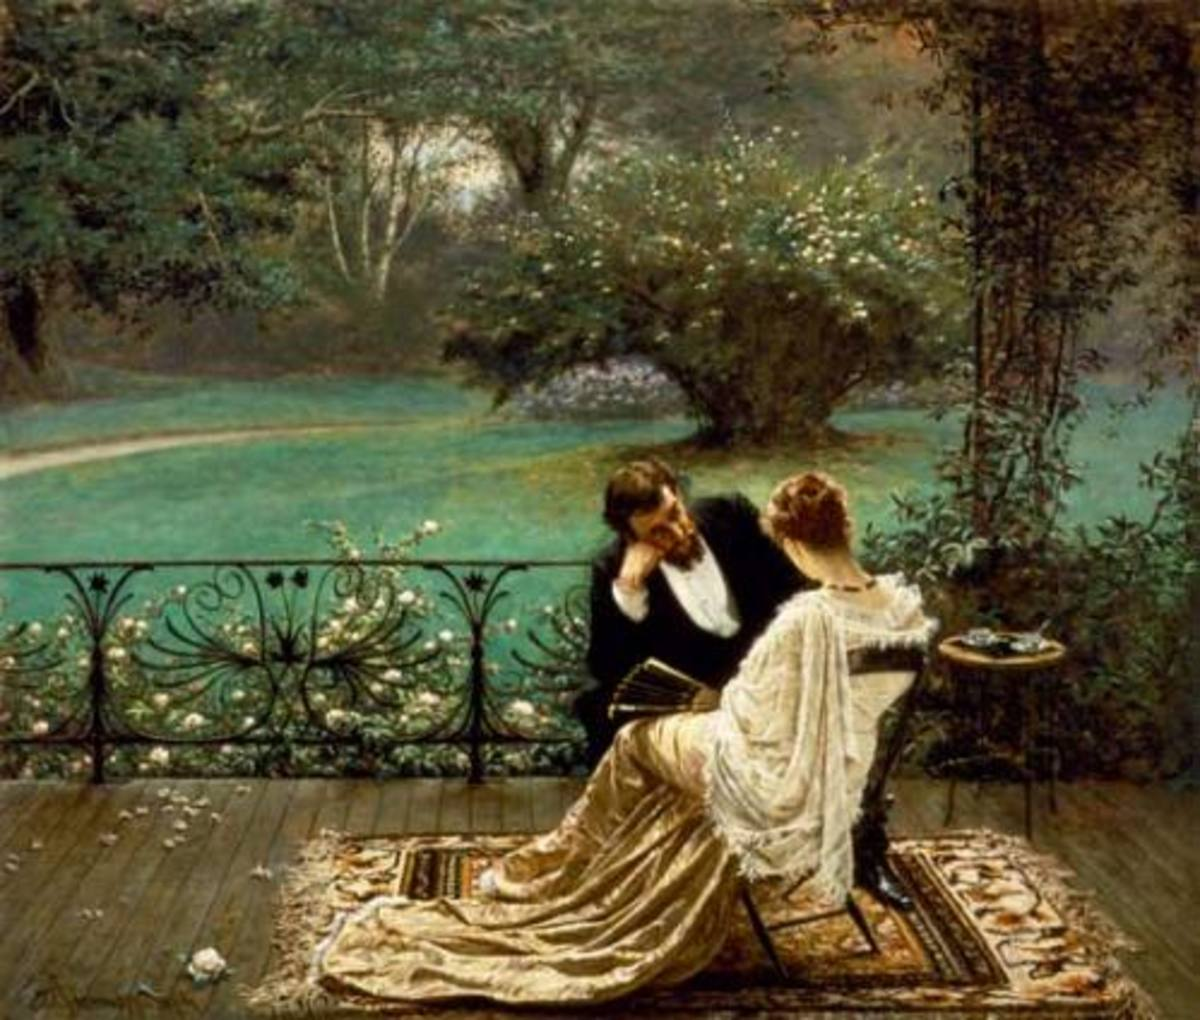 Romantic Scene of a couple - perfect for Valentine's Day